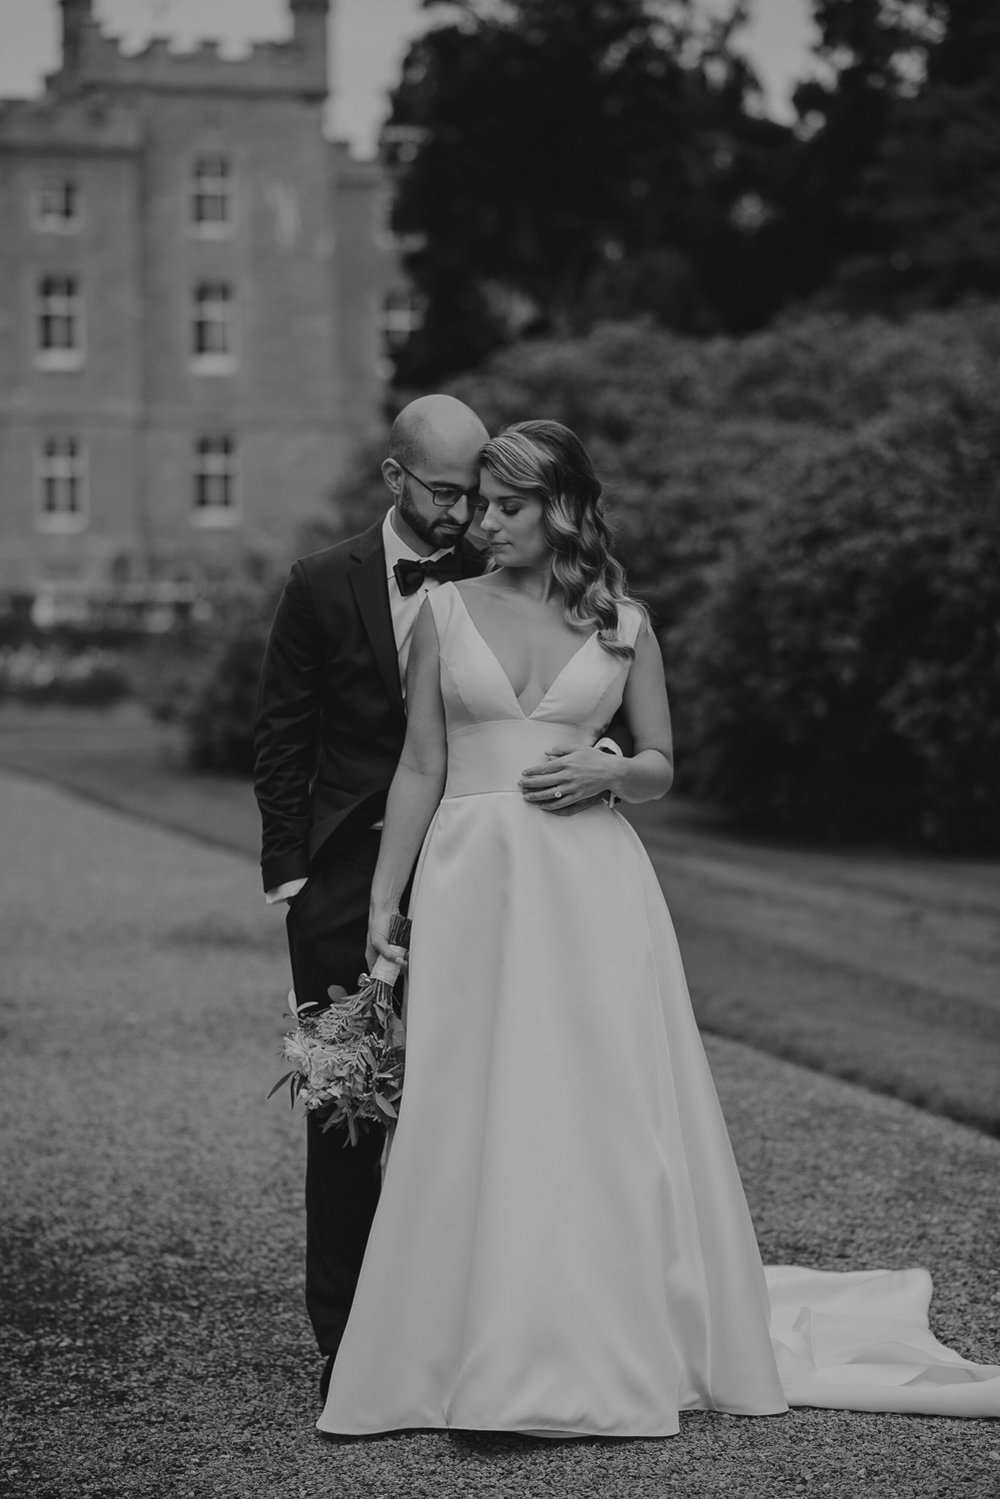 Markree castle wedding photographs -38.jpg